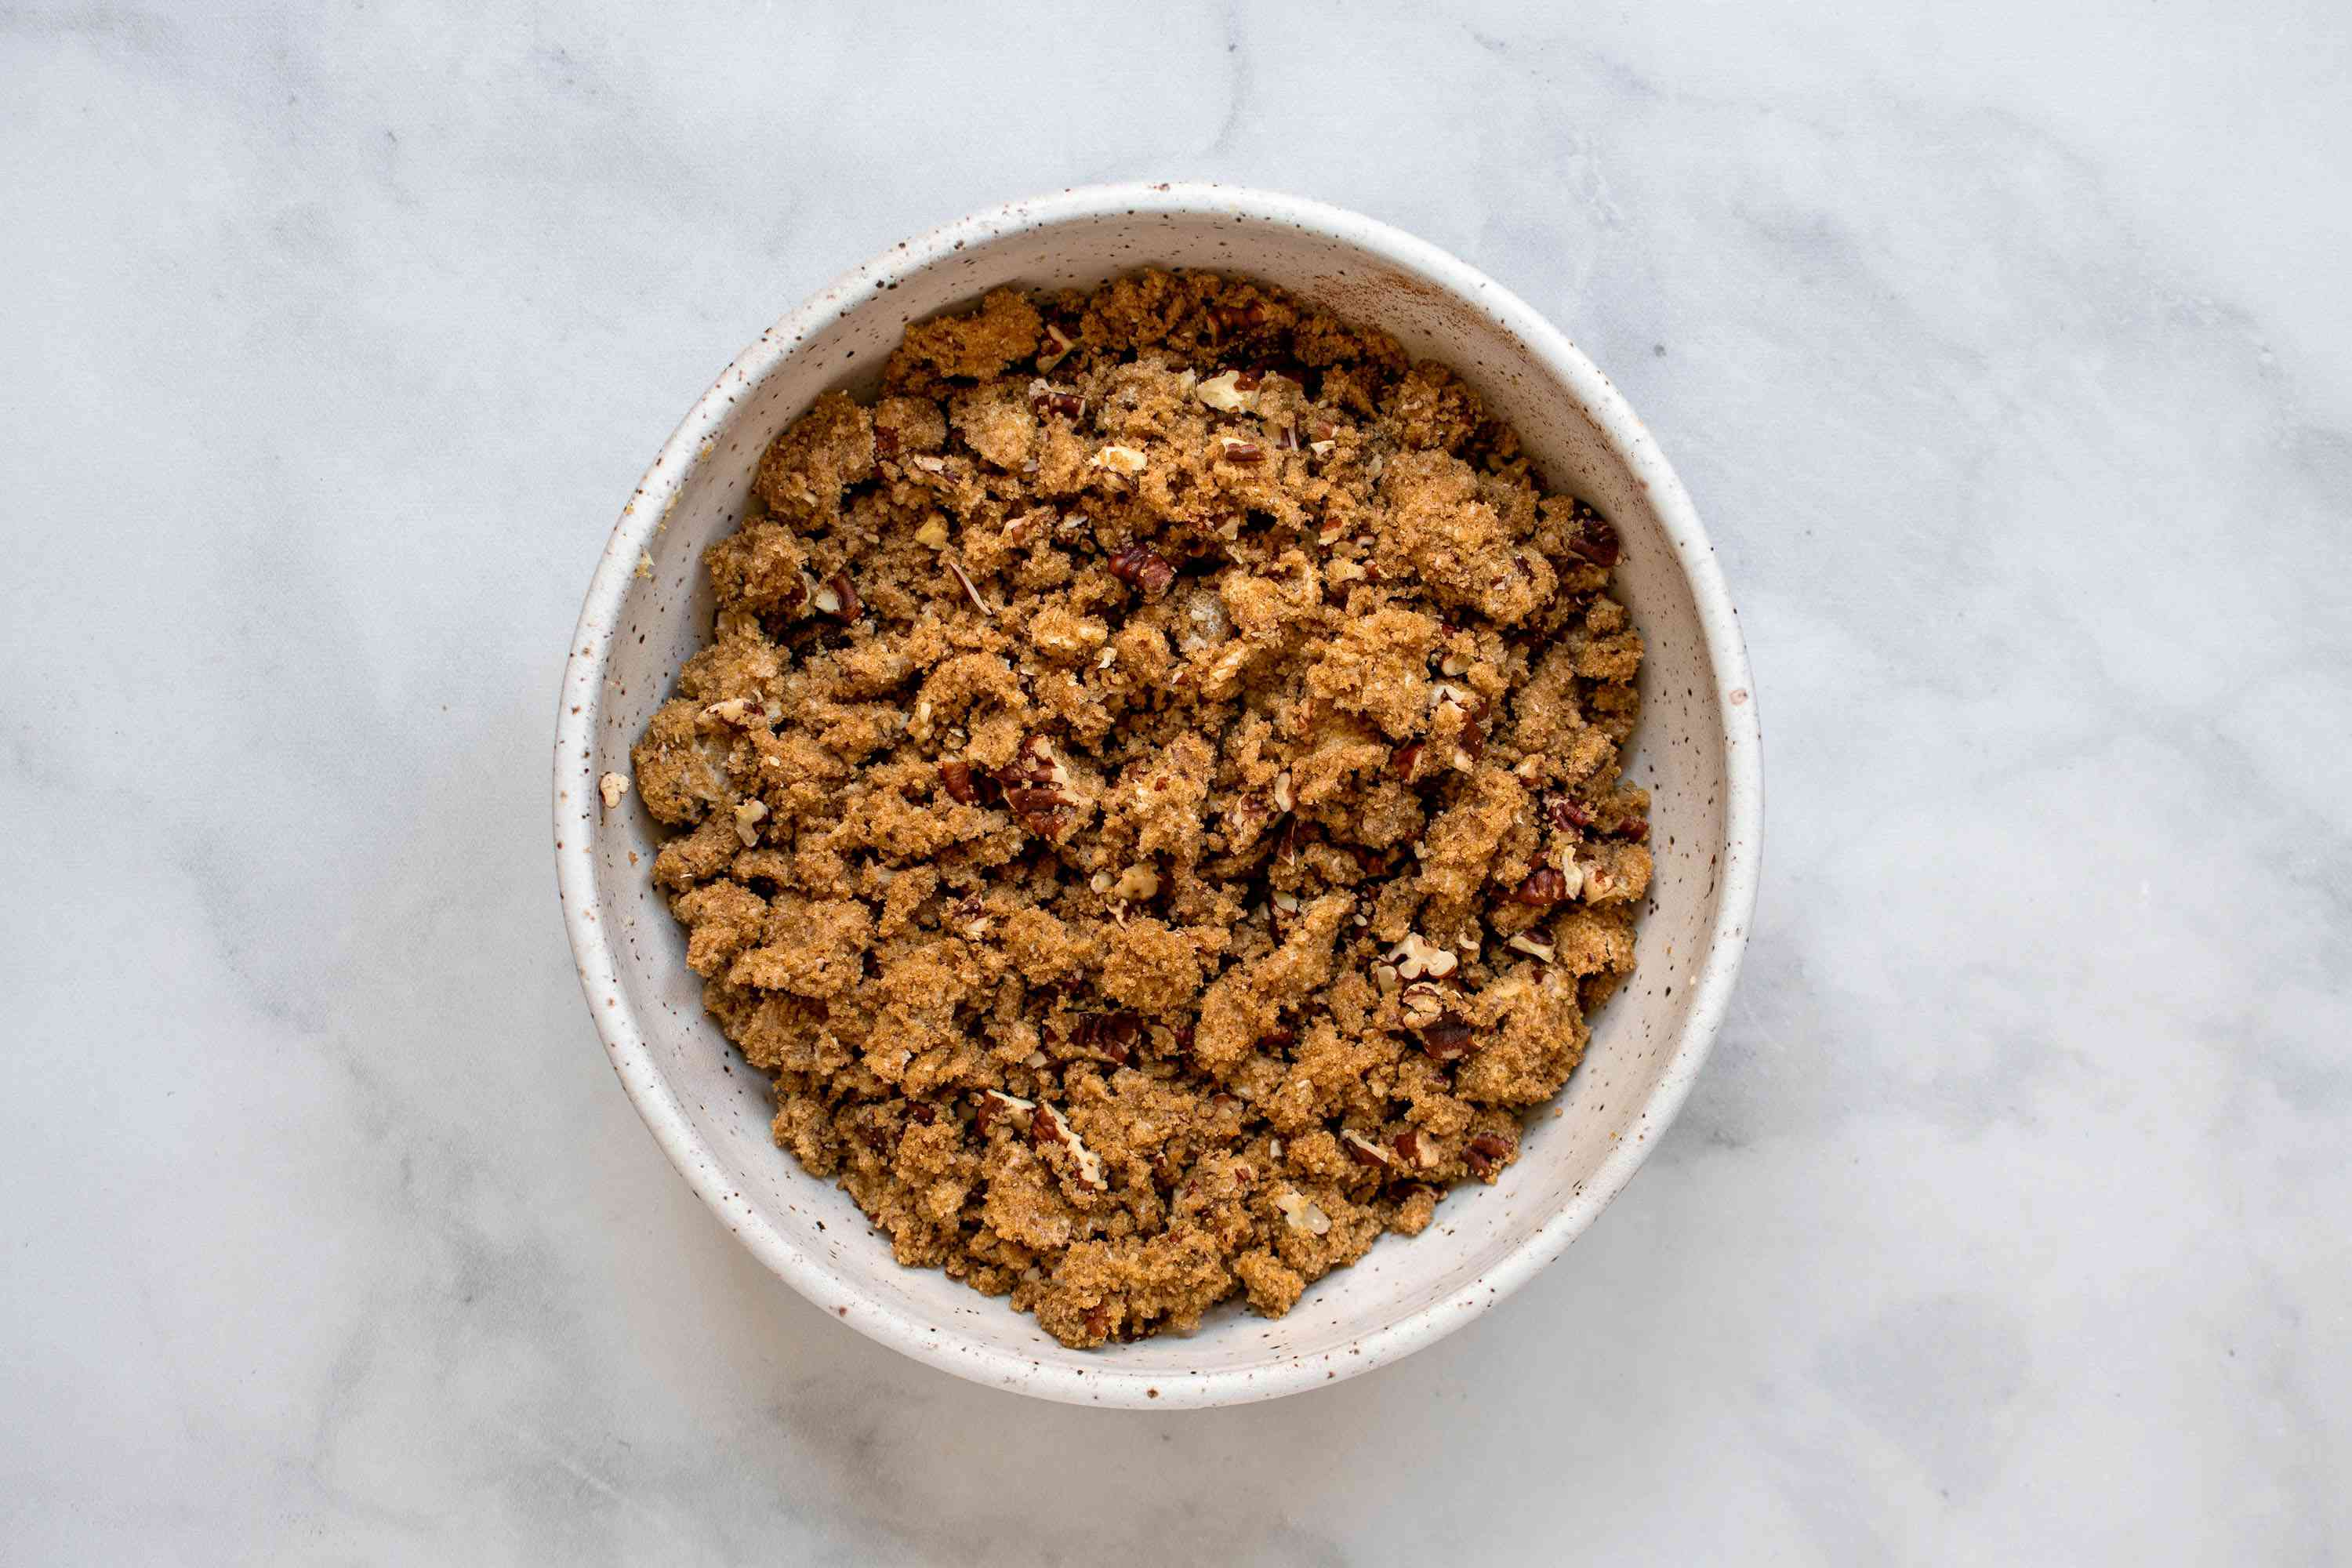 In a small mixing bowl, combine the brown sugar, soy margarine, chopped pecans and cinnamon